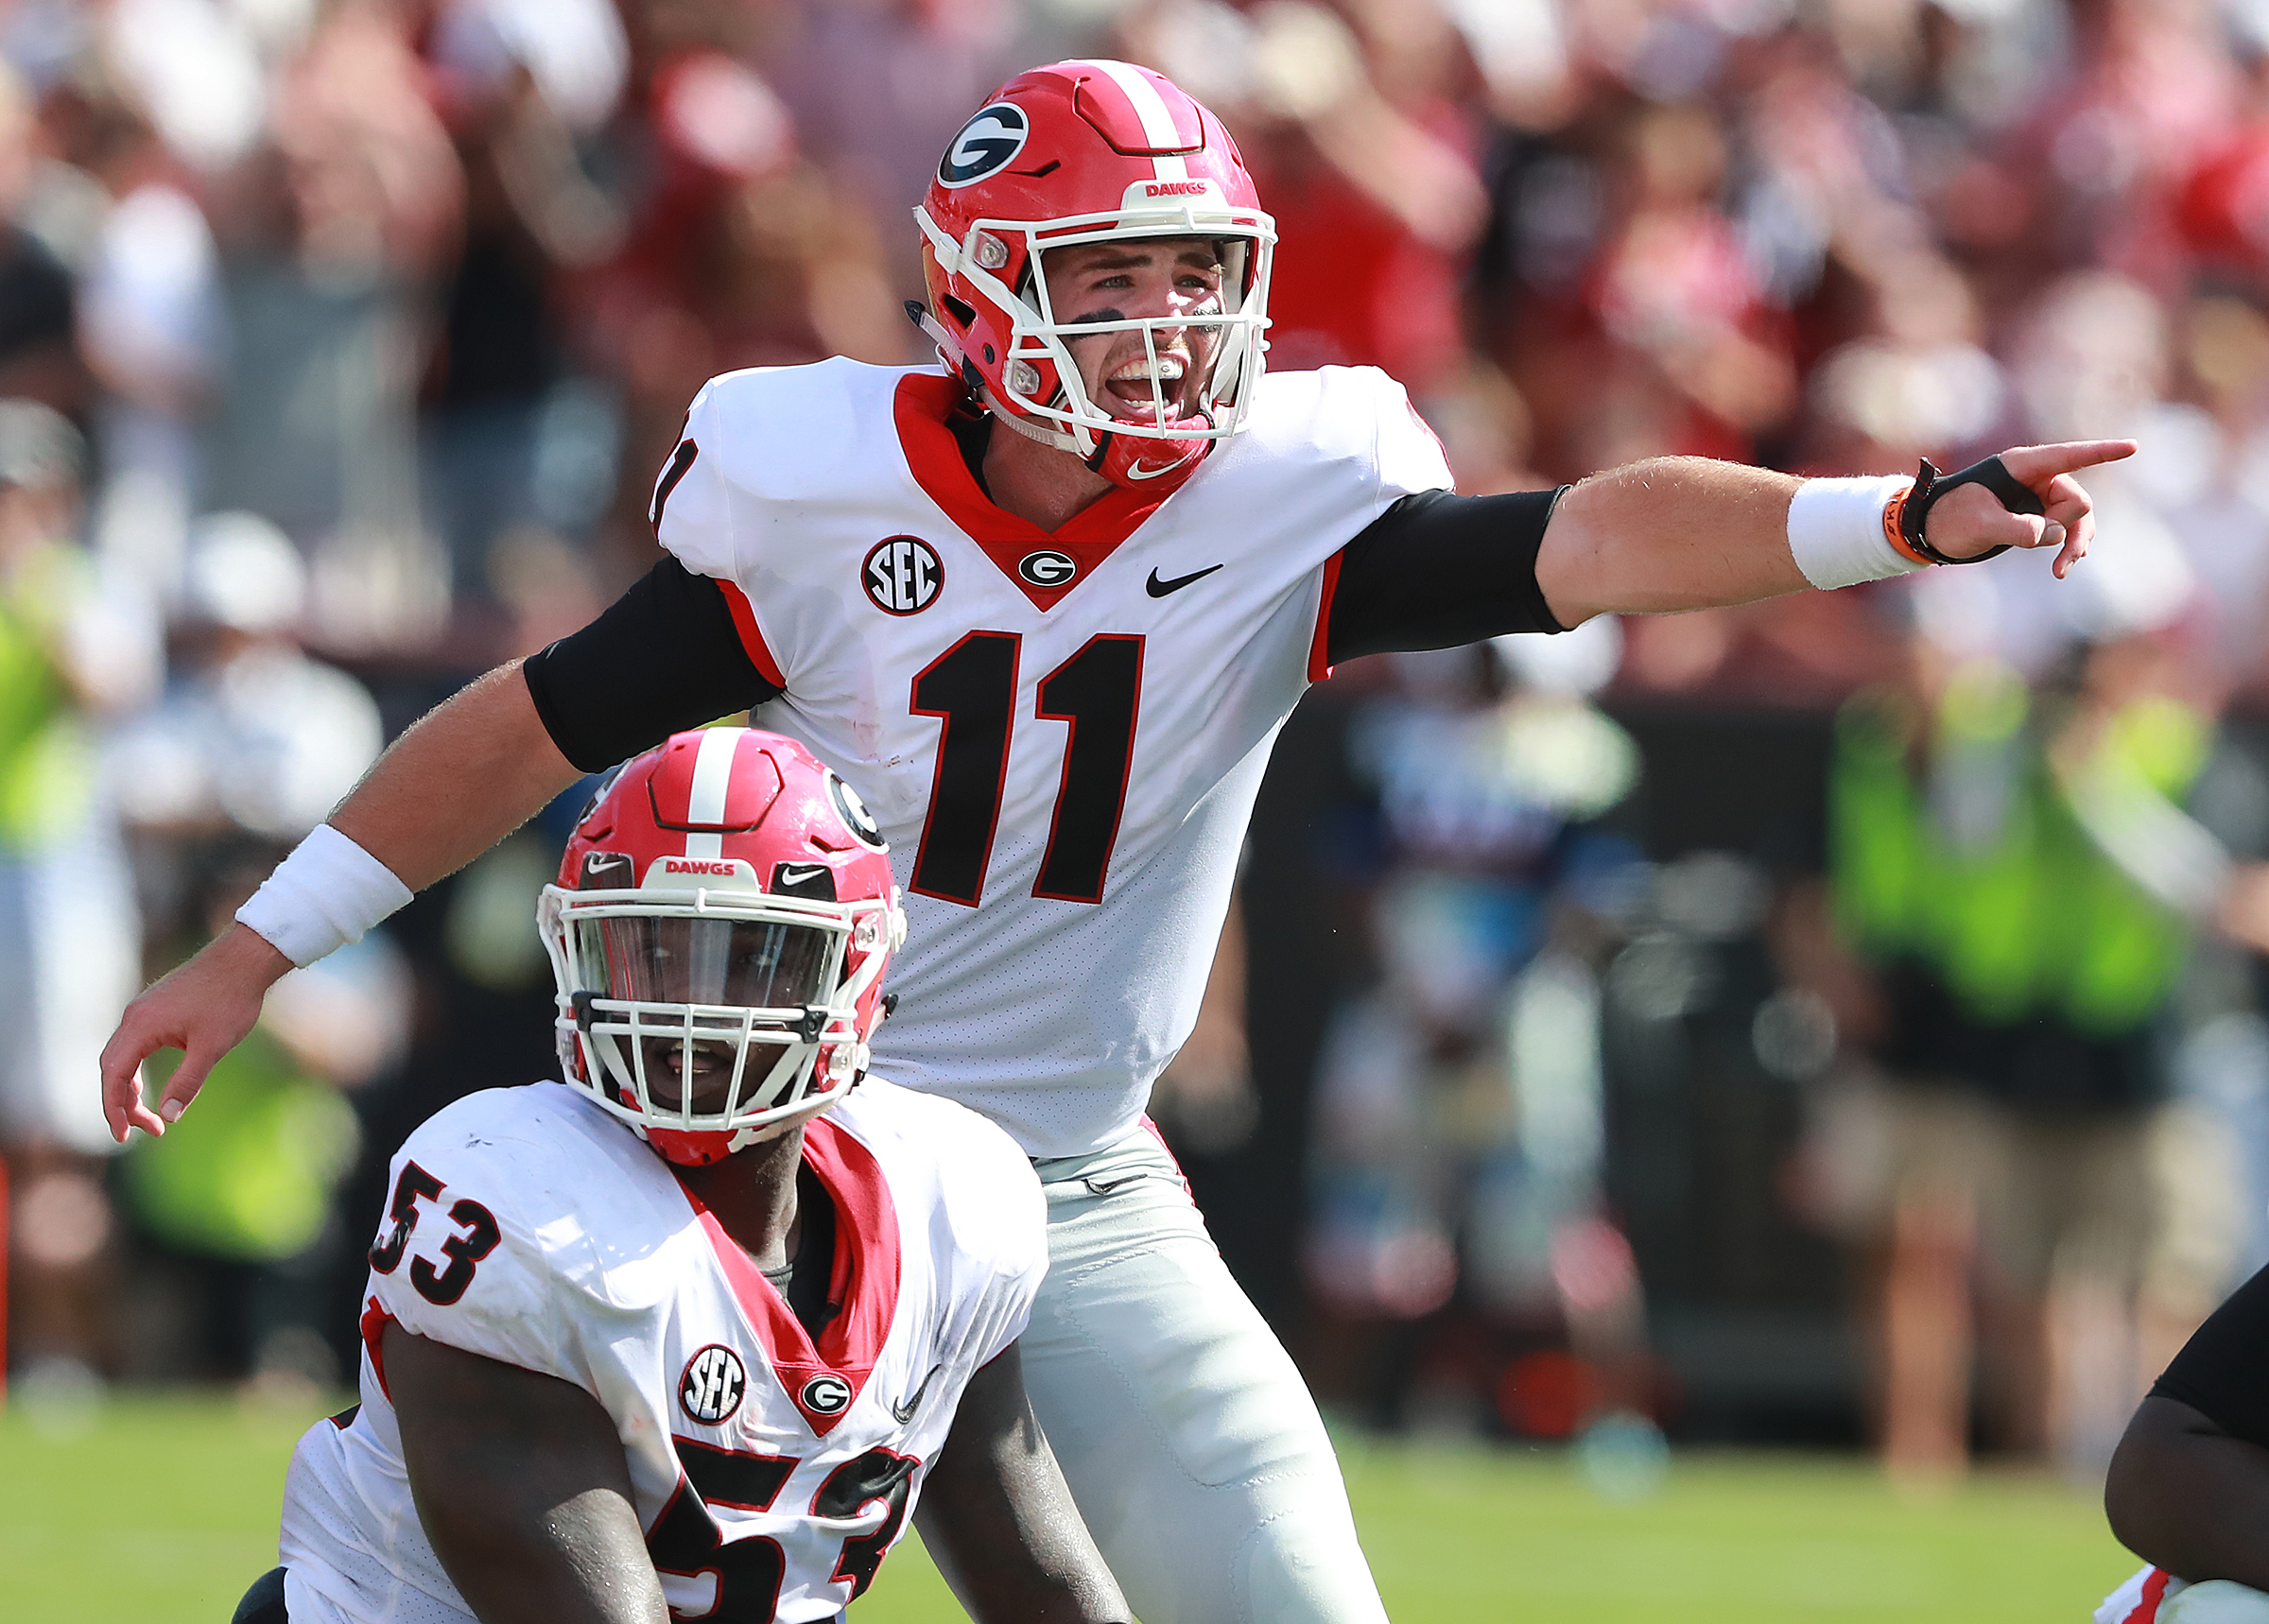 UGA maintains No. 3 ranking in latest AP poll